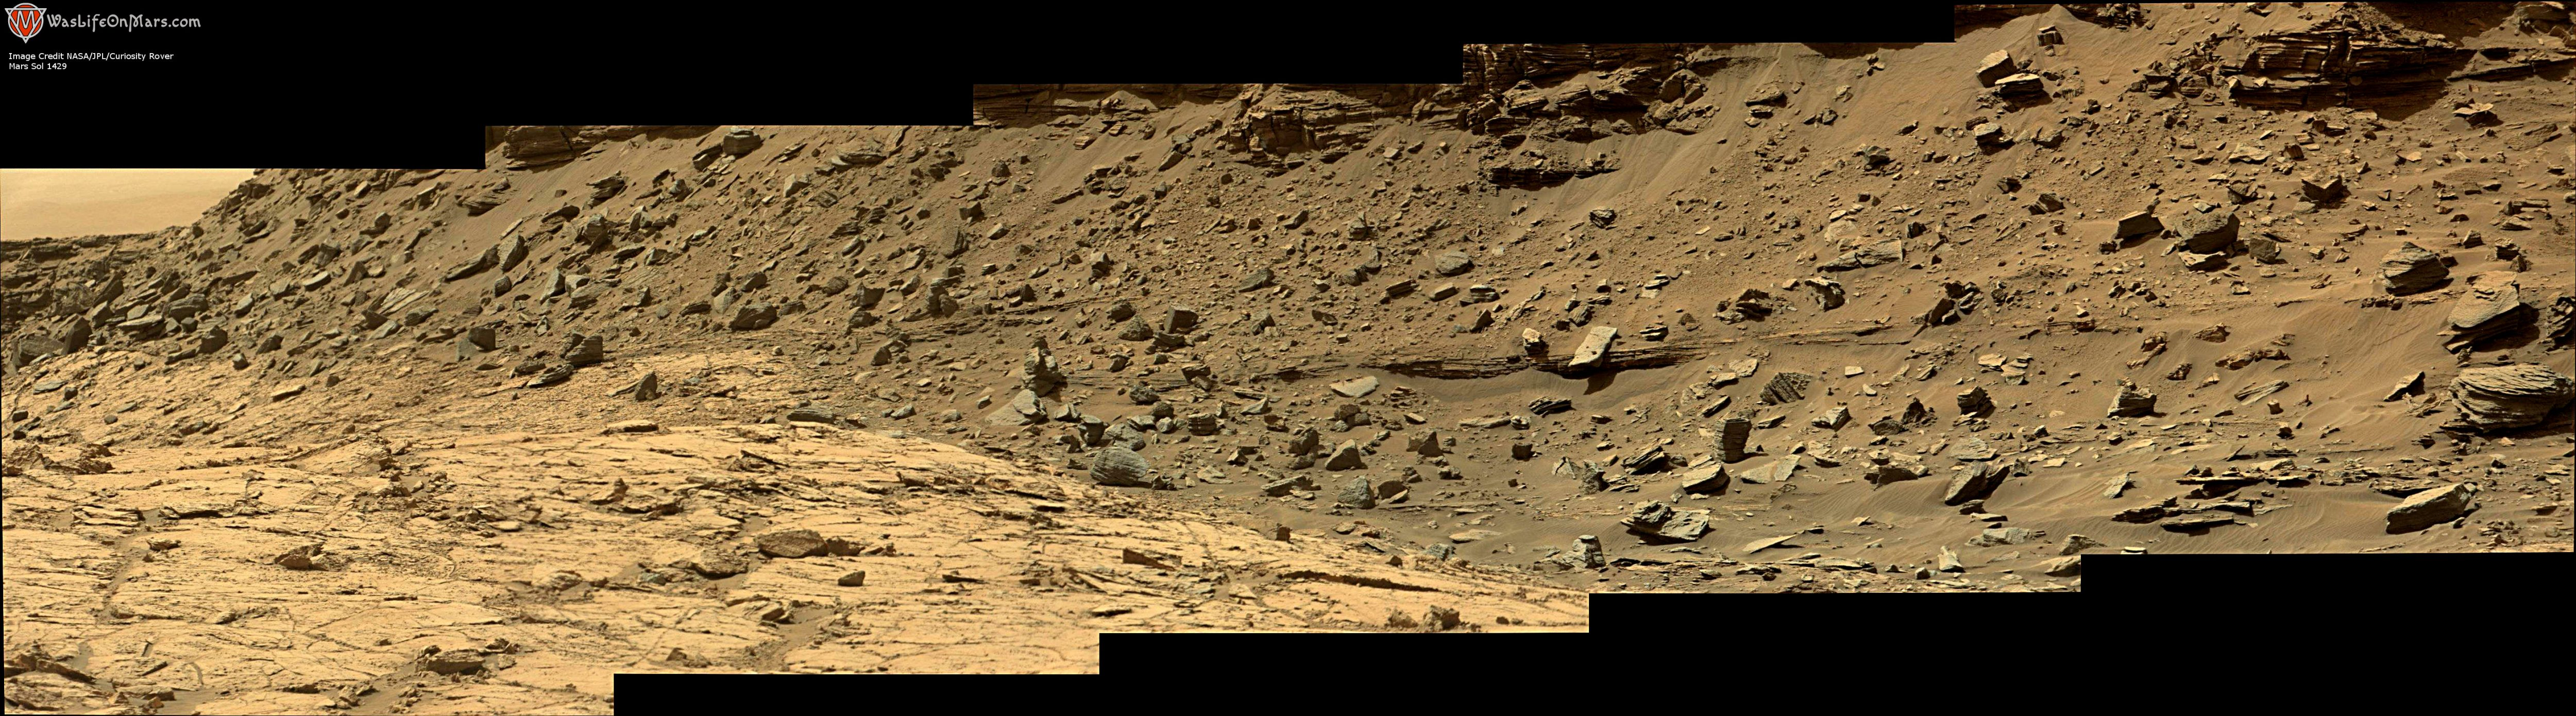 panoramic curiosity rover view 1e - sol 1429 - was life on mars